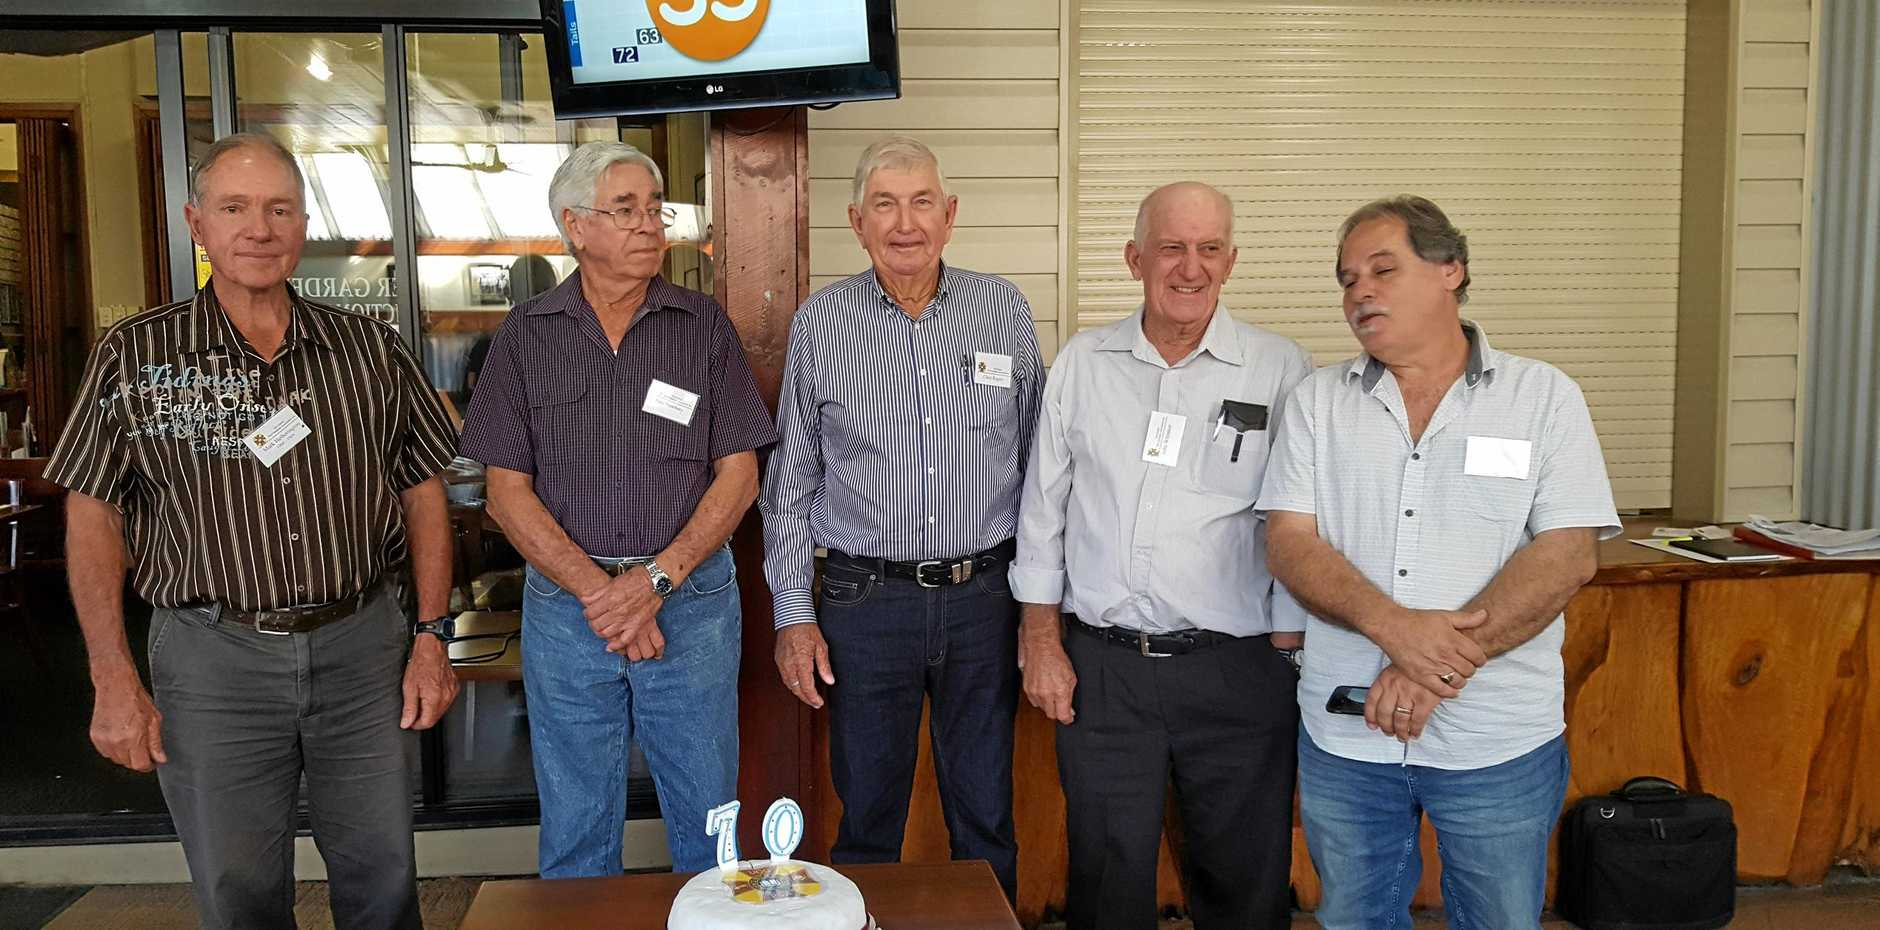 PAST STUDENTS: University of Queensland Gatton Campus Past Students Association (Mackay) committee, from left, Mark Hetherington, Paul Newbery, Clive Rogers, John Whitaker with reunion guest speaker Mark Pace. A reunion for past students will be held on May 19 in Walkerston. RSVP 0407595 349.